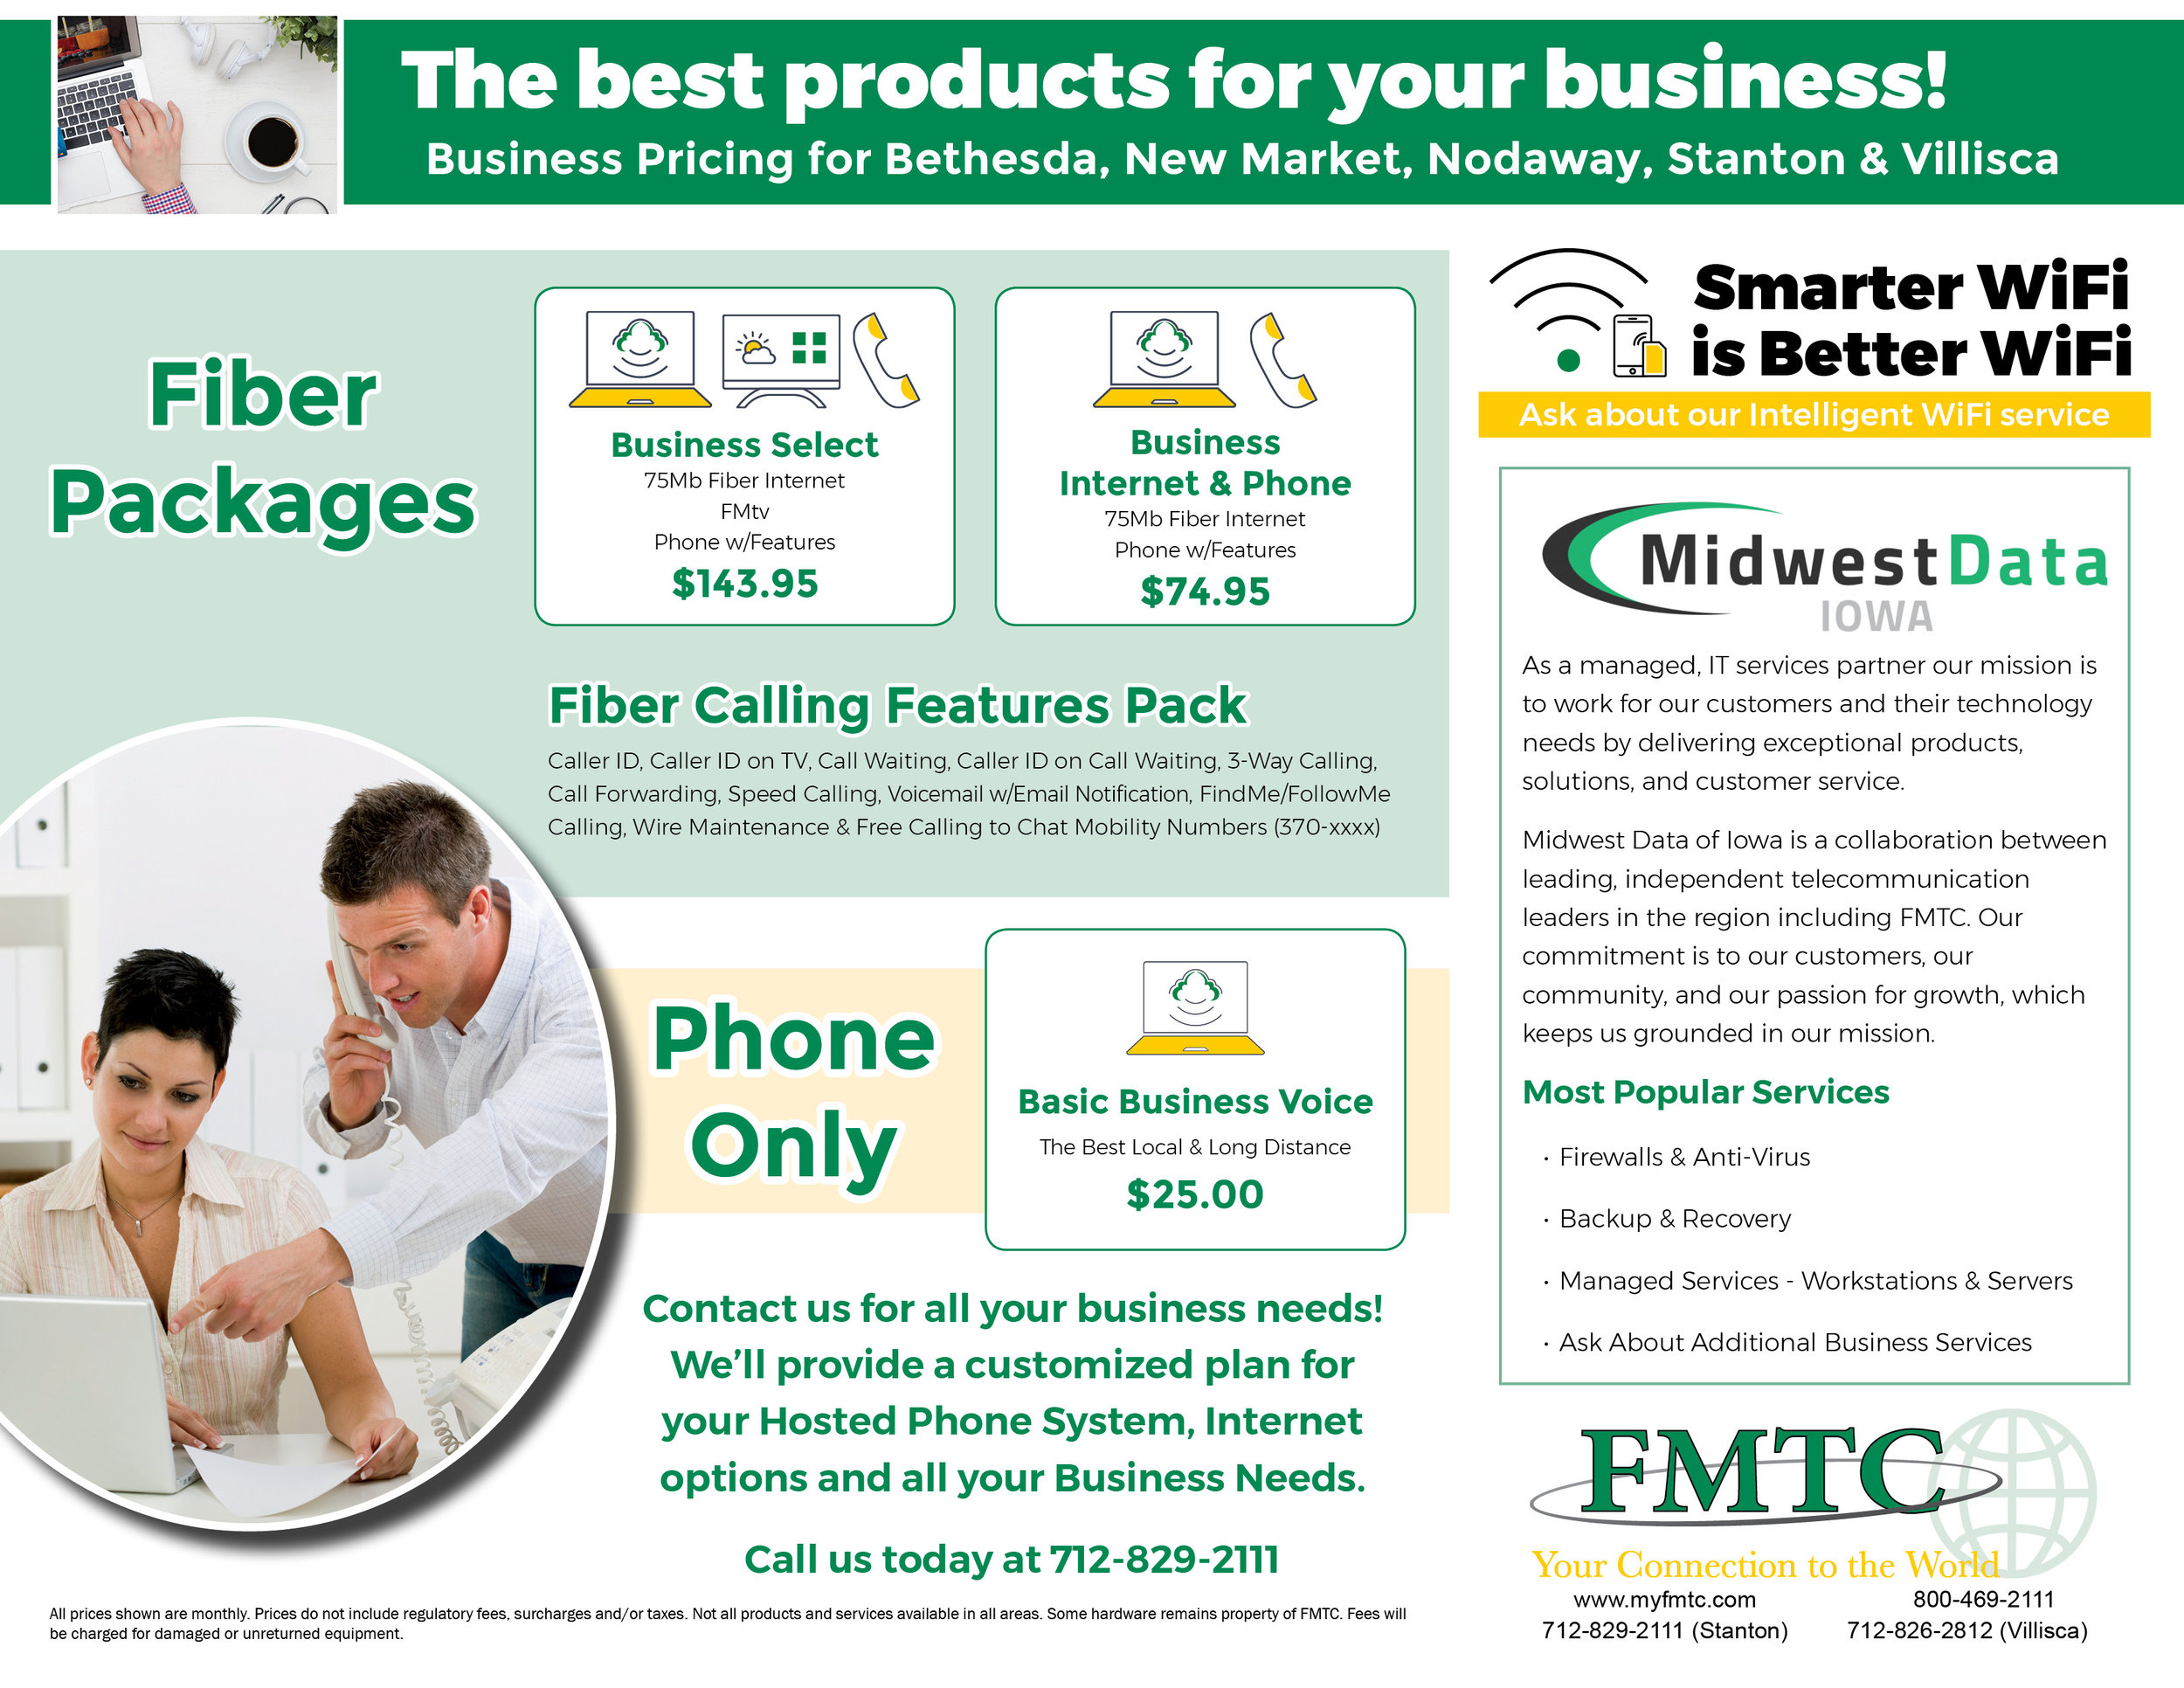 FMTC Bus Pricing Guide-Bethesda, New Market, Nodaway, Stanton & Villisca - 4-19.jpg